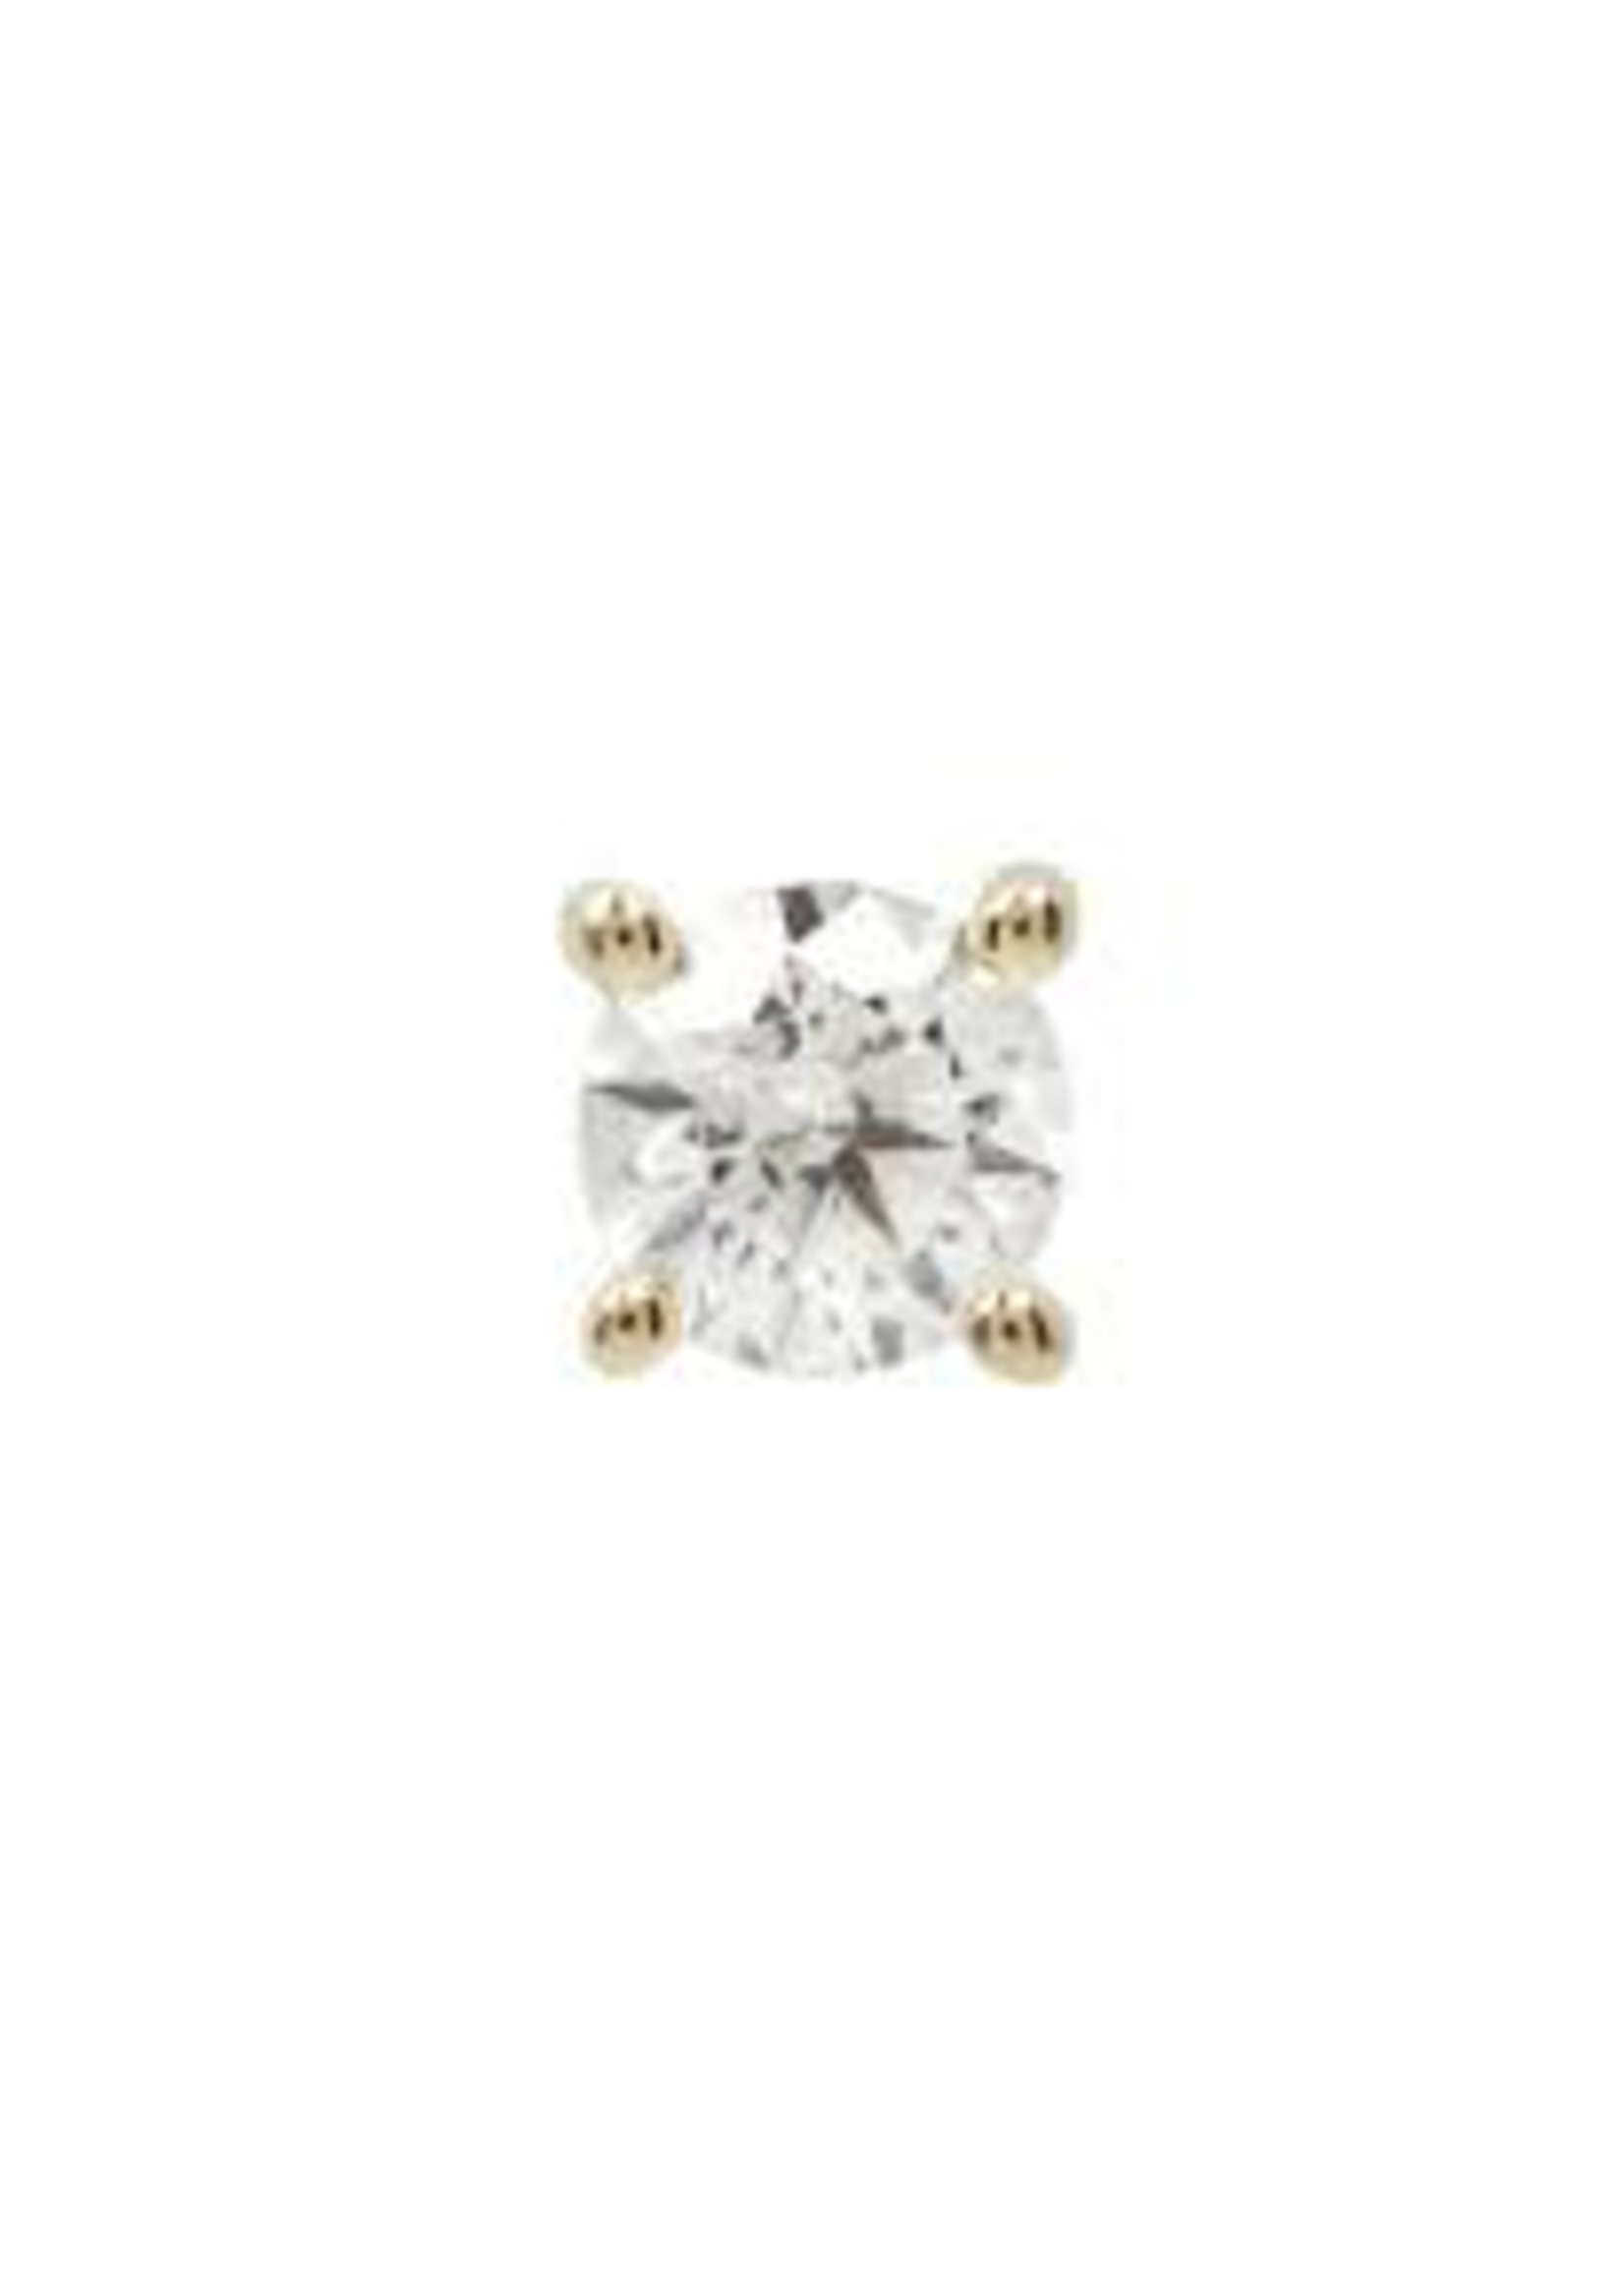 14k YG 2.5mm Prong Set CZ Threadless End